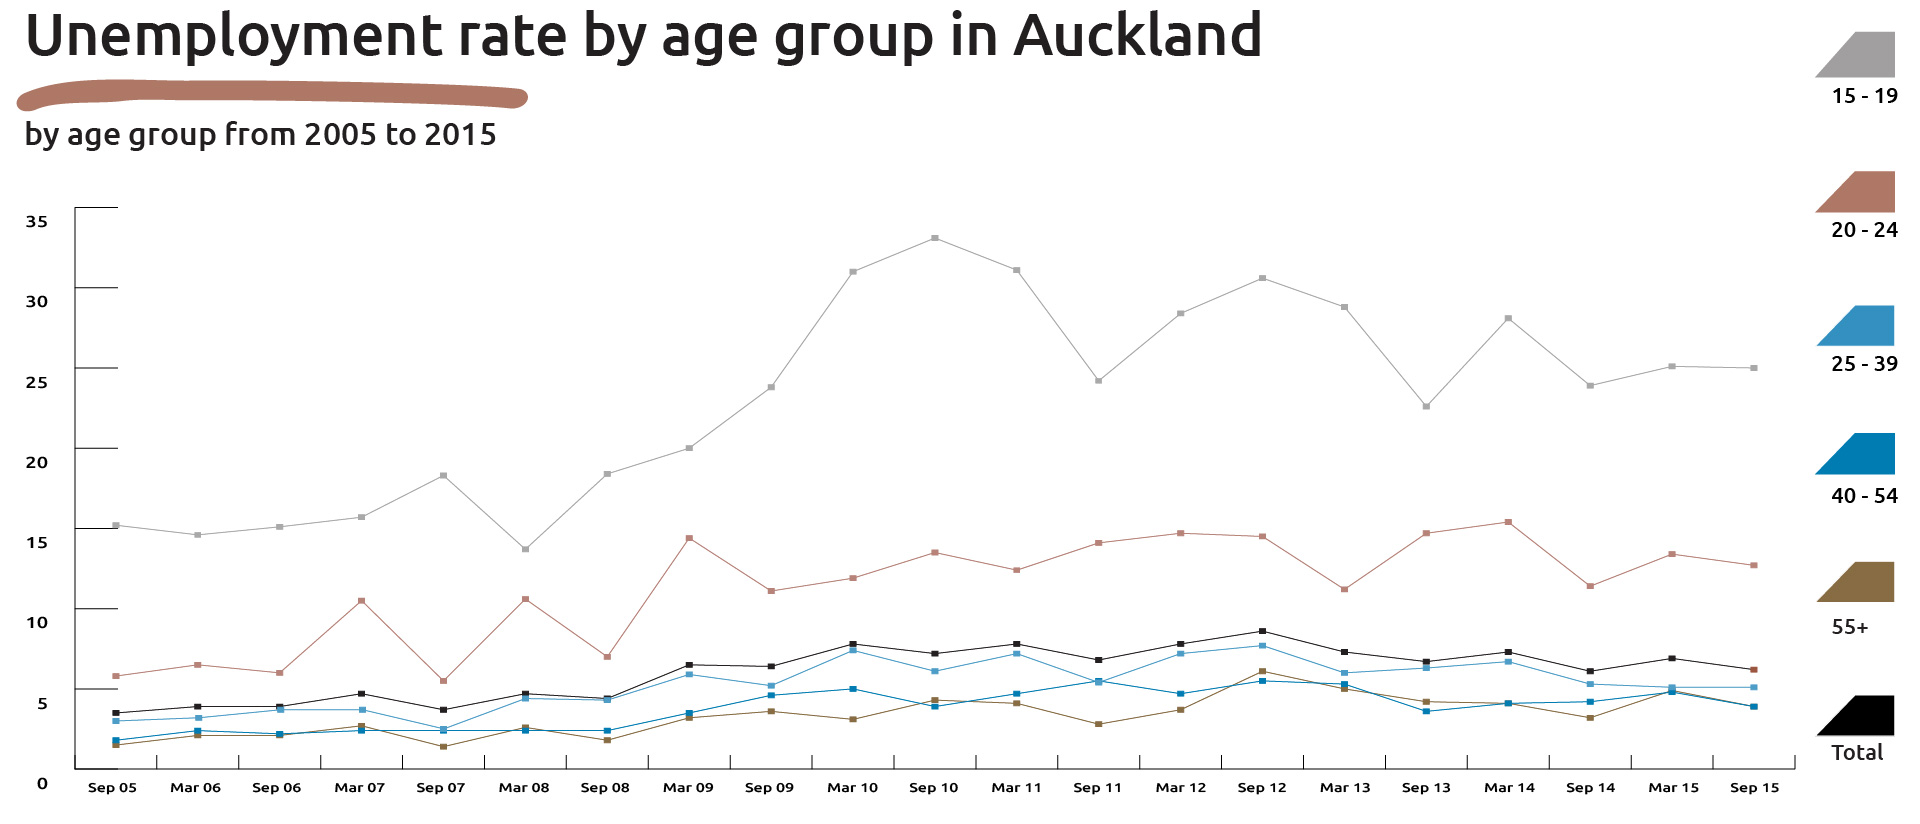 Graph showing the unemployment rate by age group in Auckland (September 2005 to 2015).